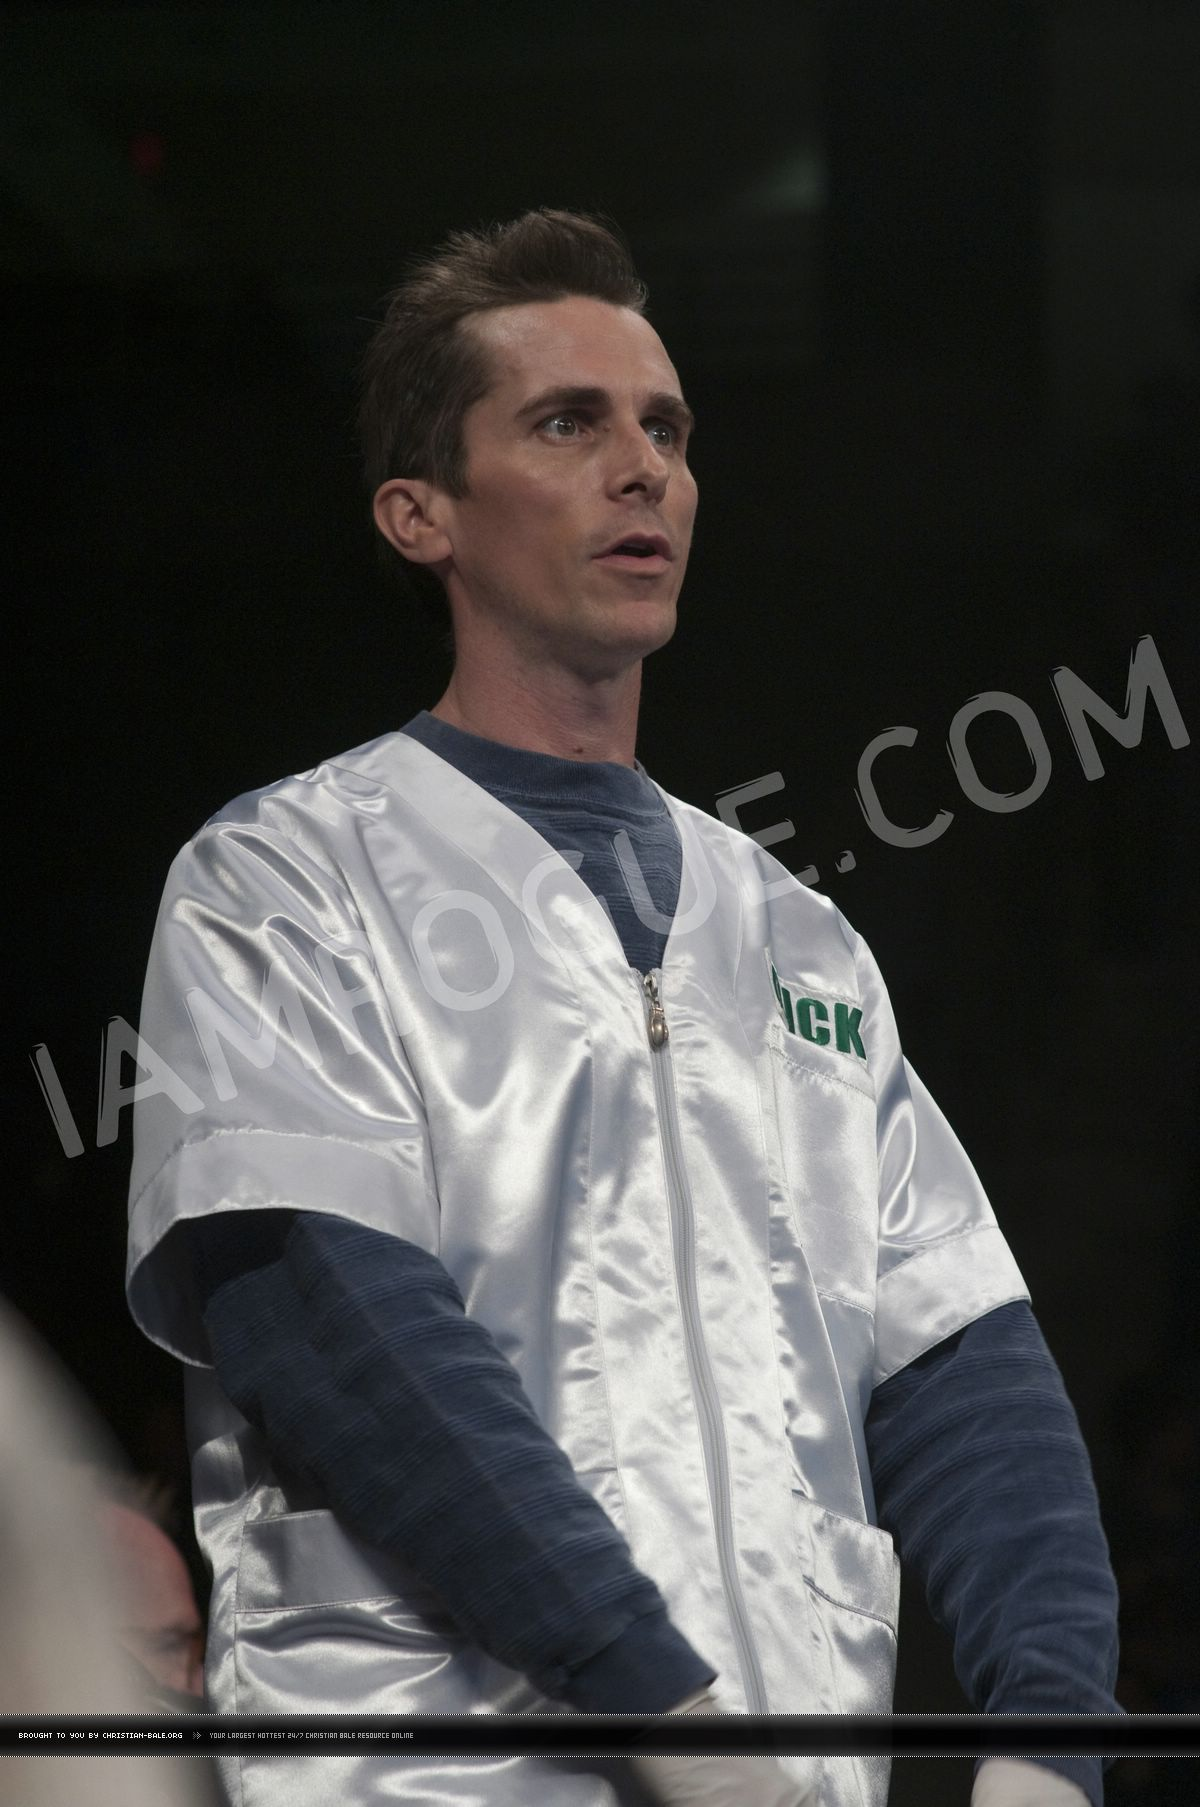 Christian Bale The fighter Christian Bale